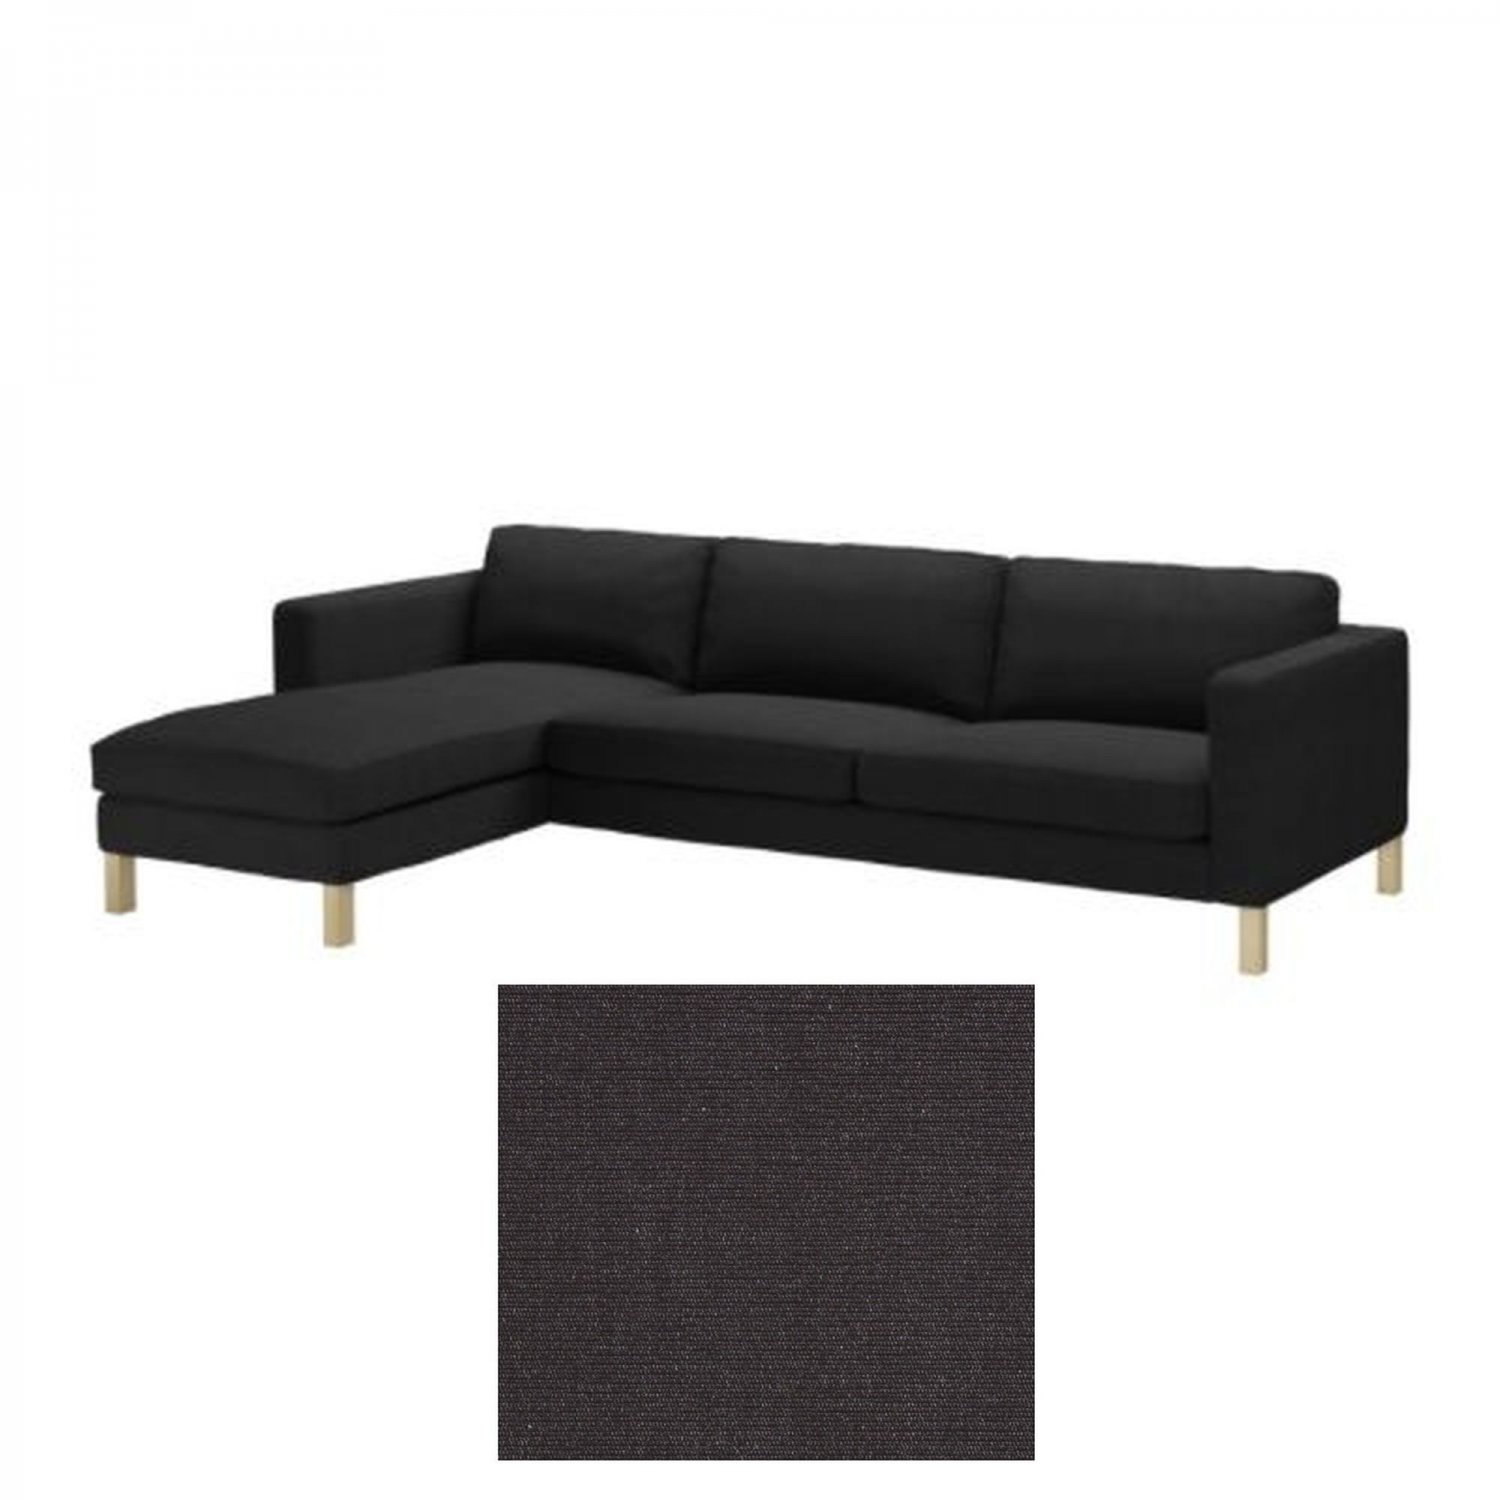 karlstad sofa cover uk roche bobois sofas ireland ikea 3 seat and chaise slipcover sivik